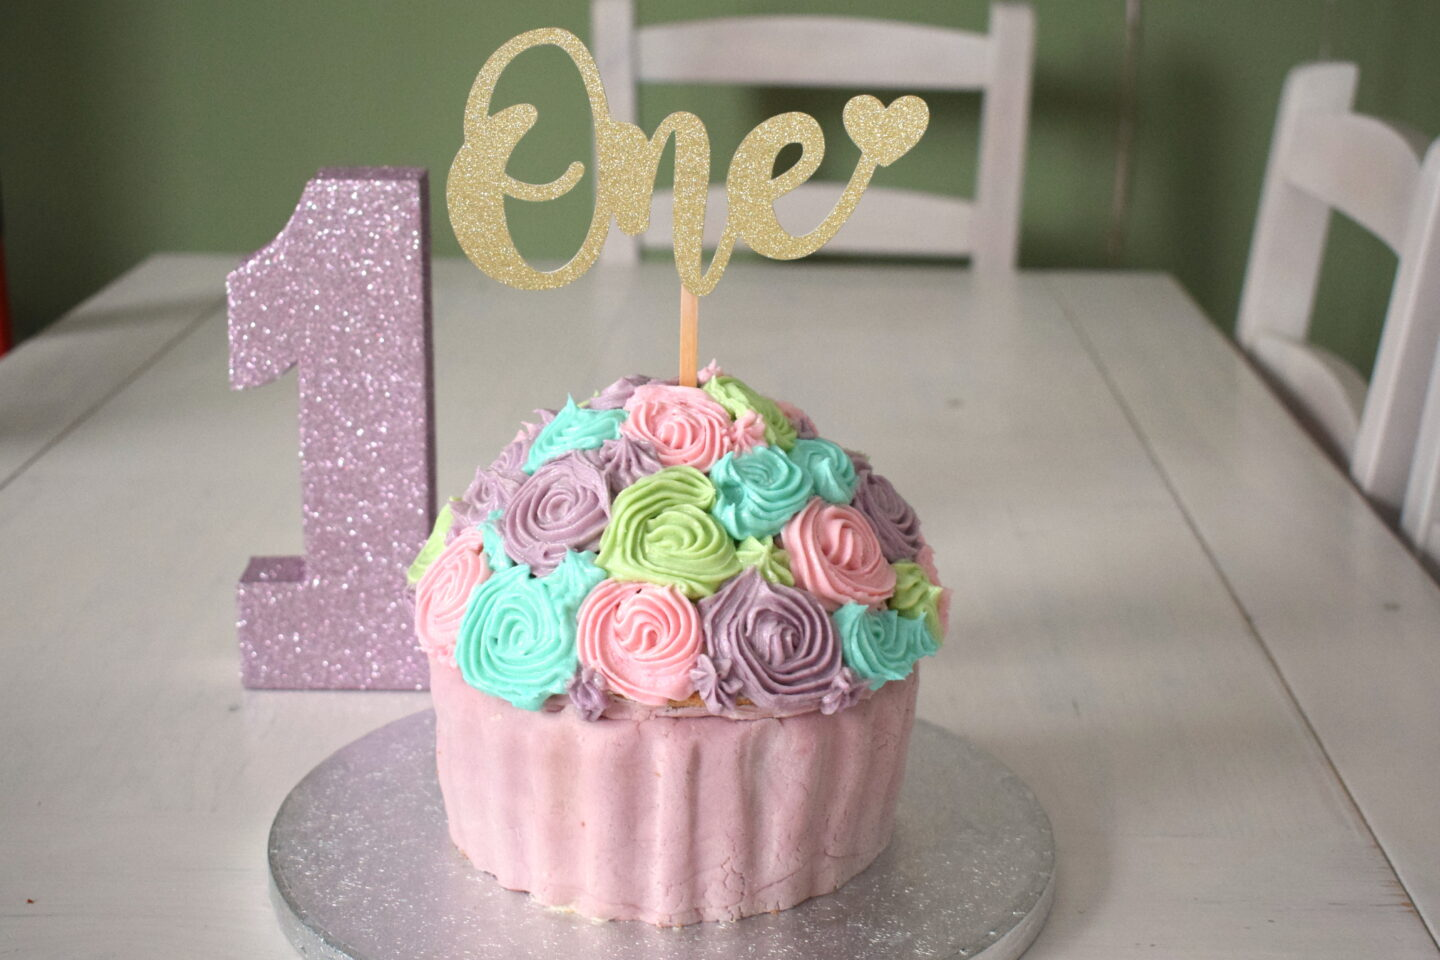 Dairy and soya free giant cupcake